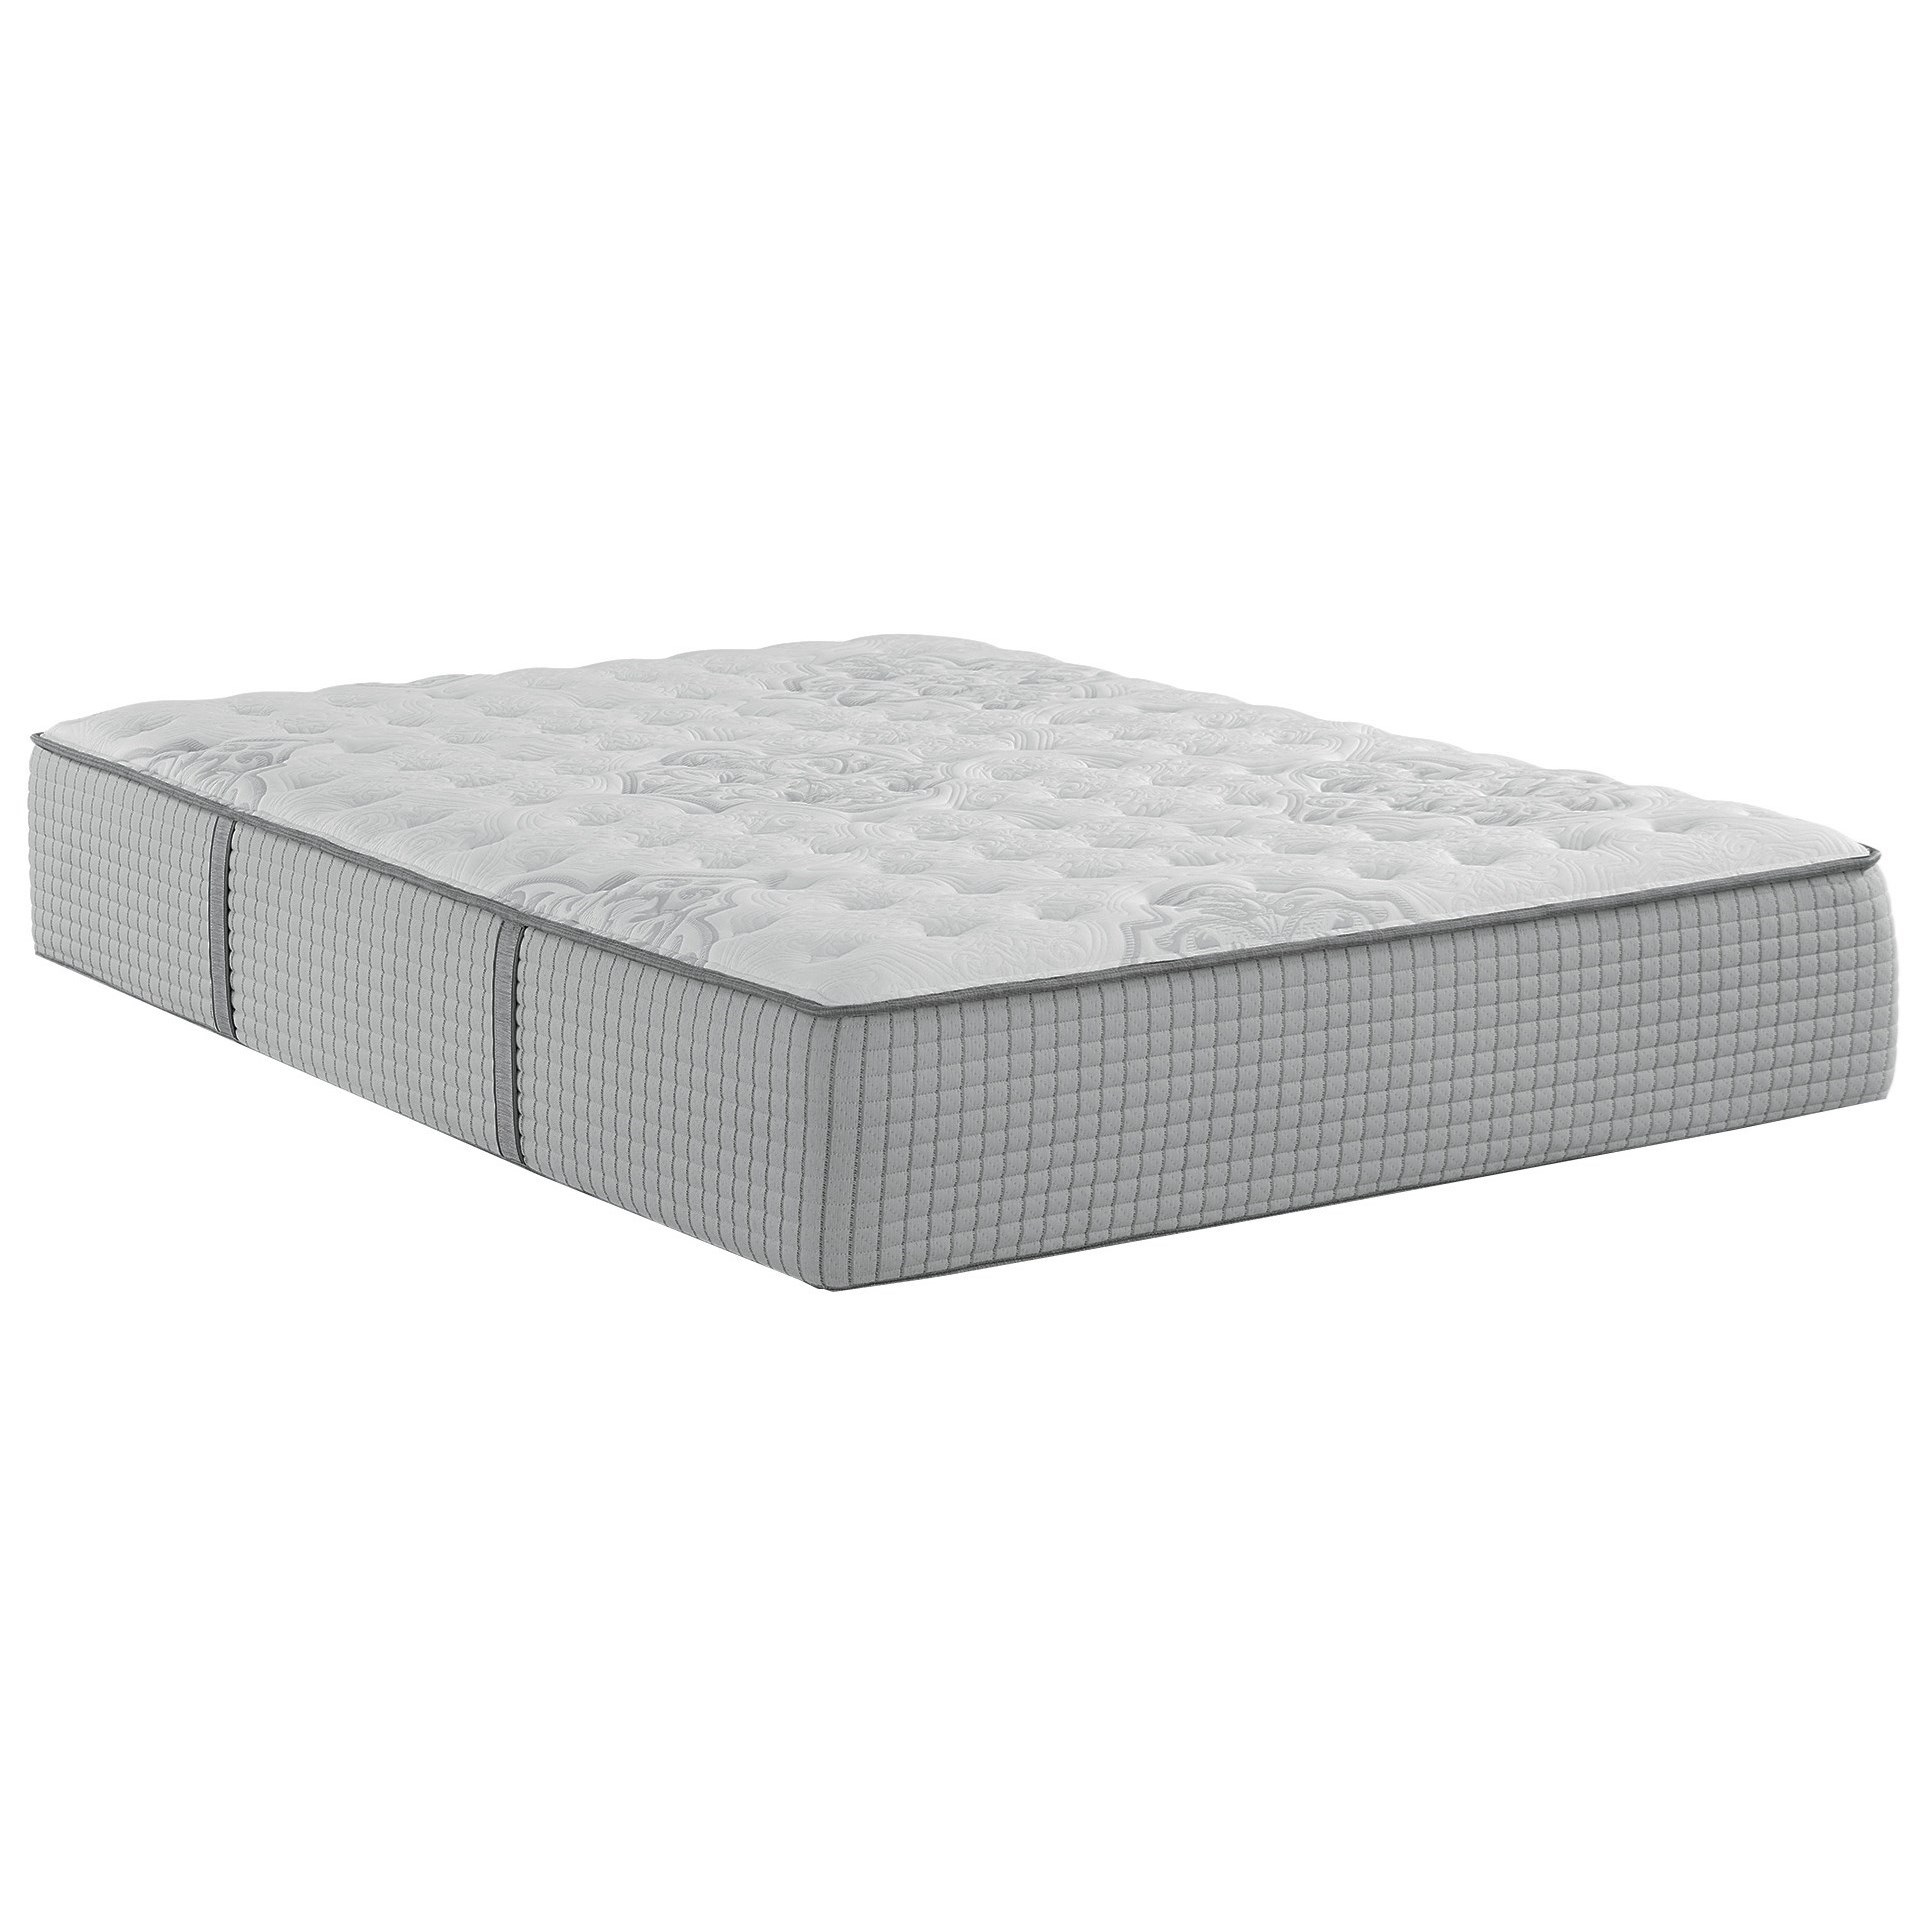 Biltmore Motif Firm Tight Top Twin Firm Hybrid Mattress by Restonic at H.L. Stephens